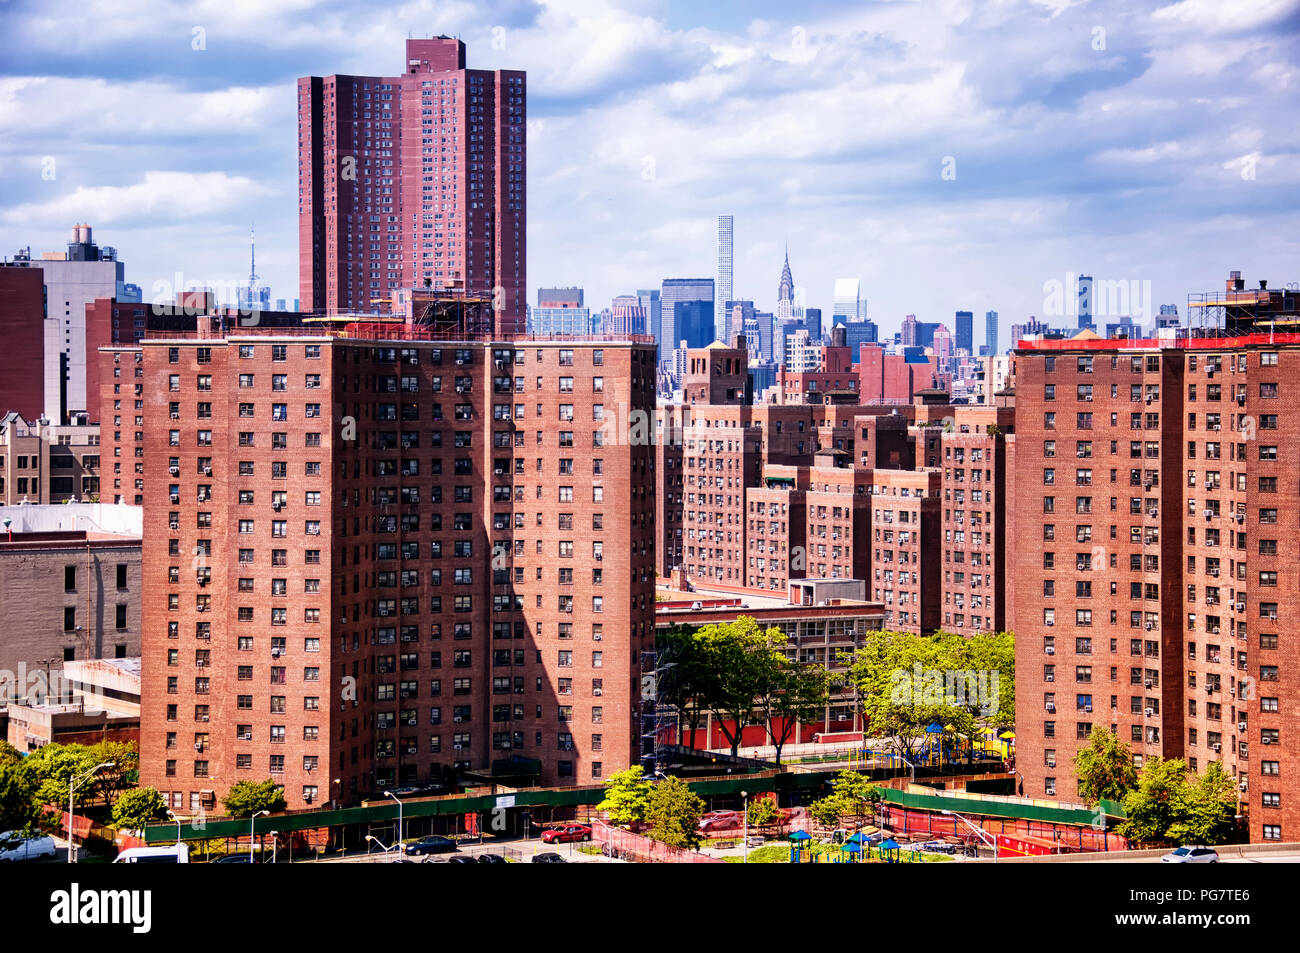 Brick apartment buildings in lower Manhattan in New York City, New York on an overcast day. Stock Photo